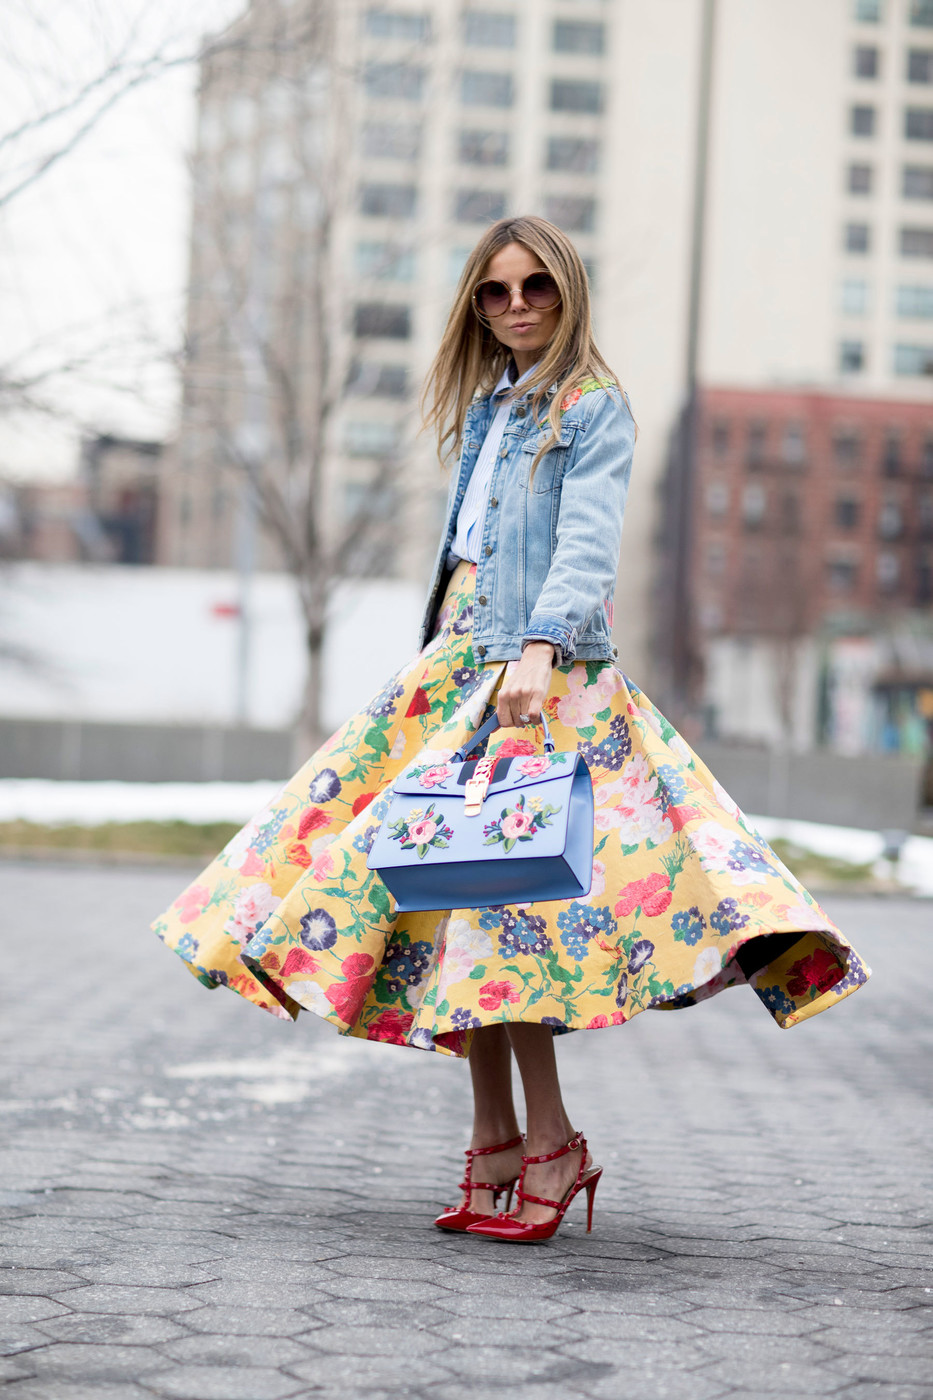 Retro Silhouette What The Stylish Girls Will Be Wearing This Spring Livingly